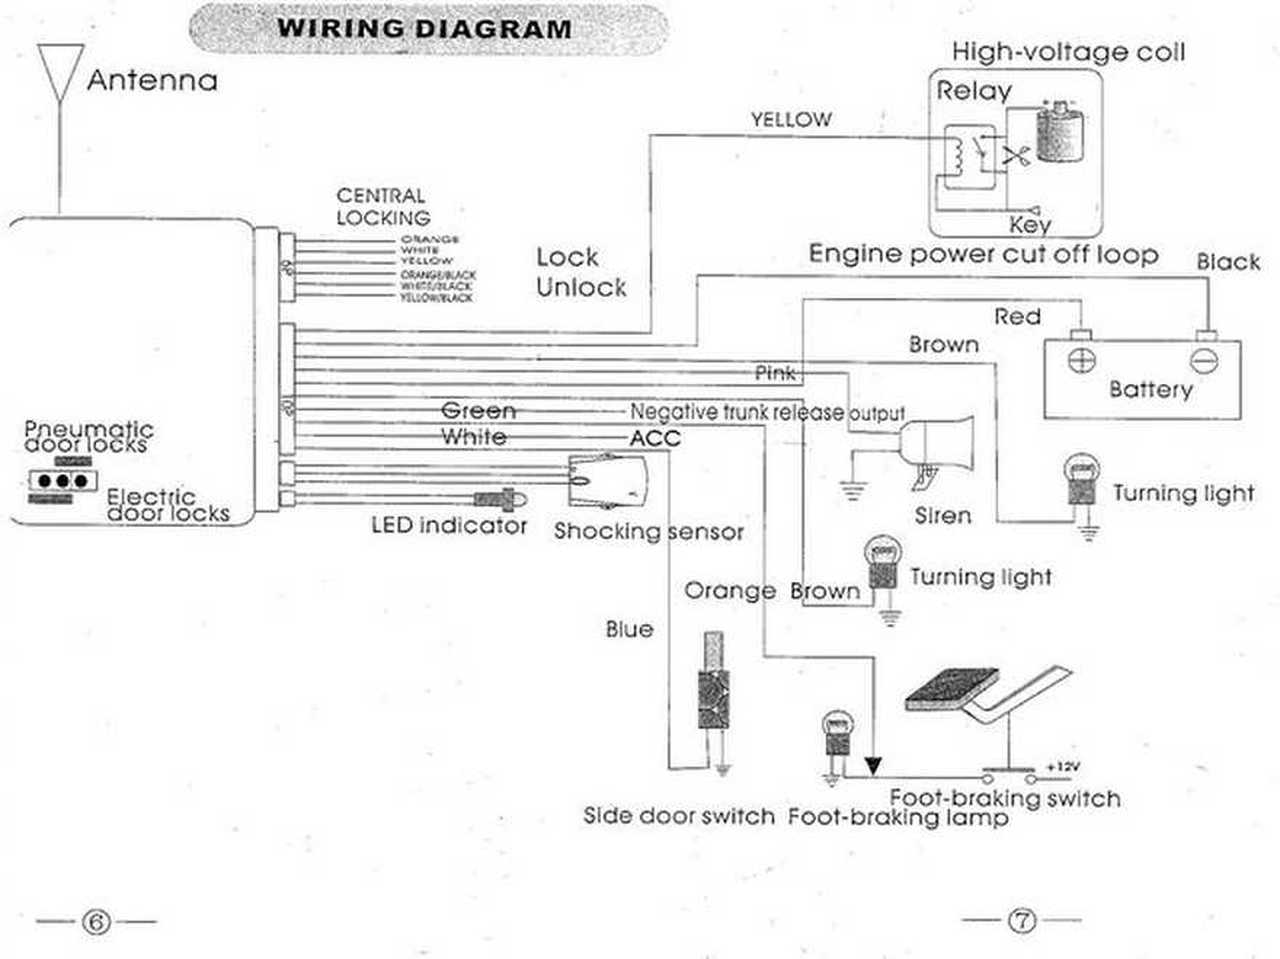 hight resolution of vision central locking wiring diagram wiring diagram blogs wiring a potentiometer for motor remote central locking wiring diagram